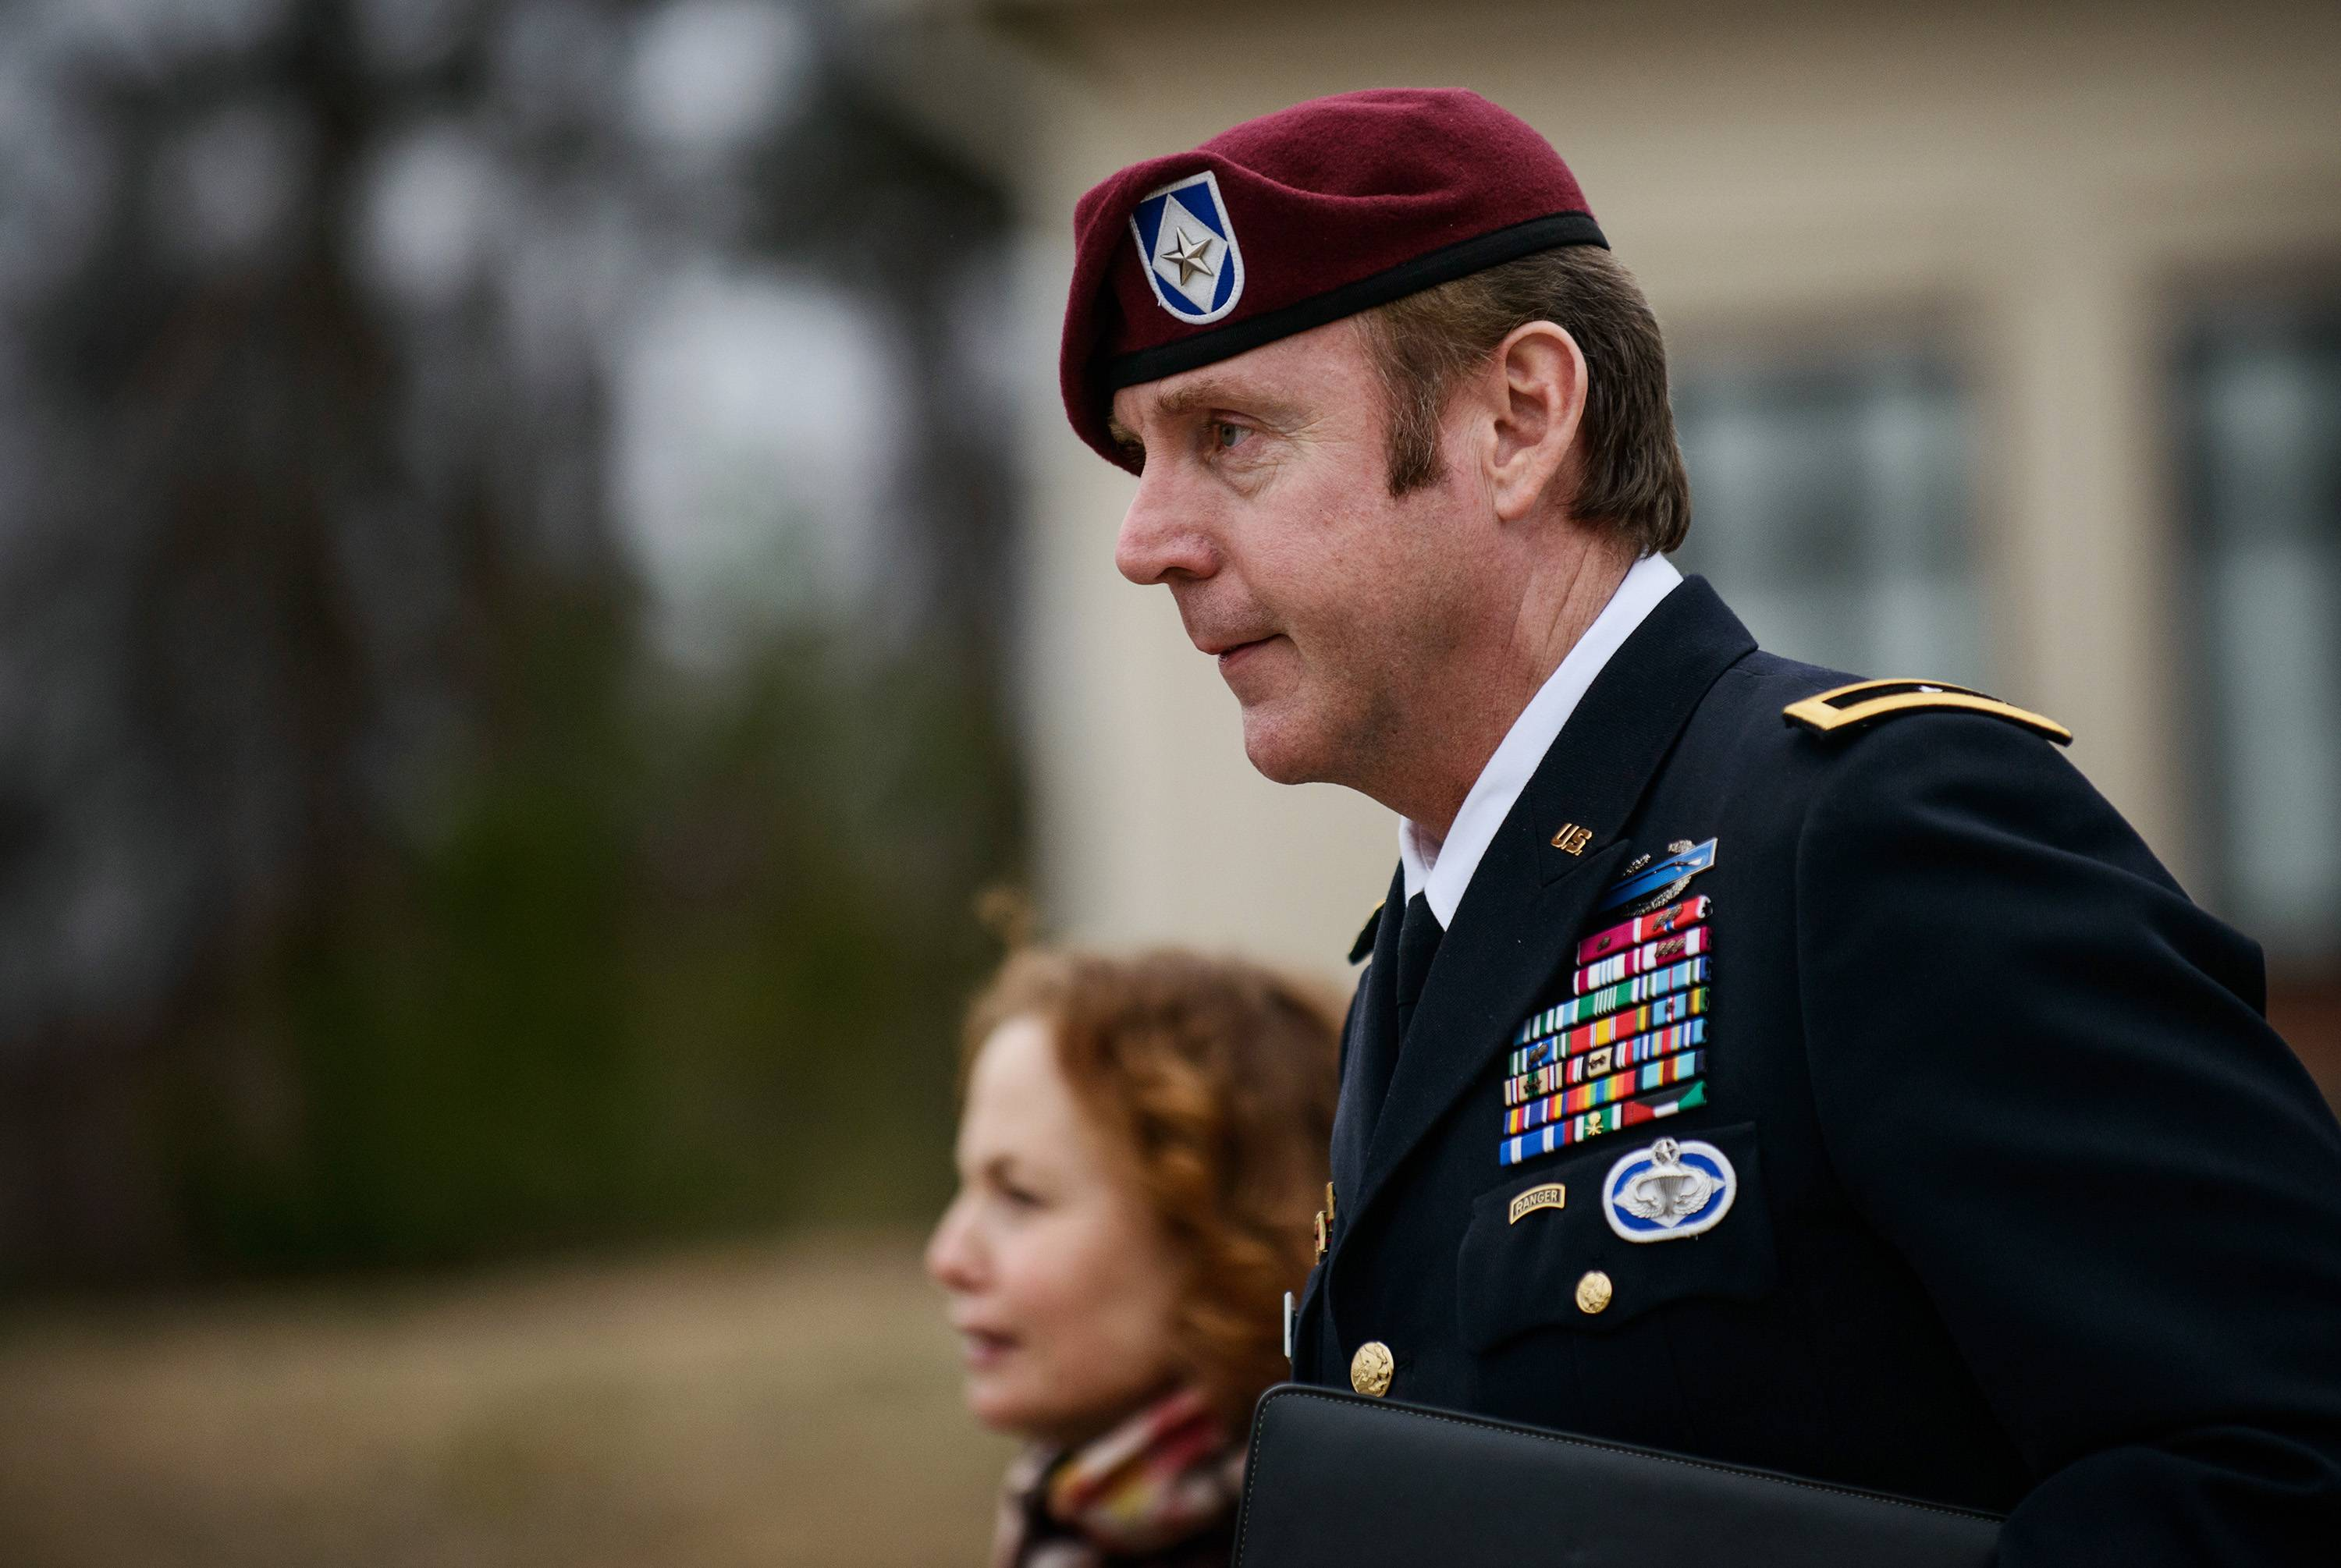 The closely watched sex assault trial for Army Brig. Gen. Jeffrey Sinclair is finally set, but it will unfold with lingering questions about the accuser's credibility and without the prosecutor who led the case for nearly two years.